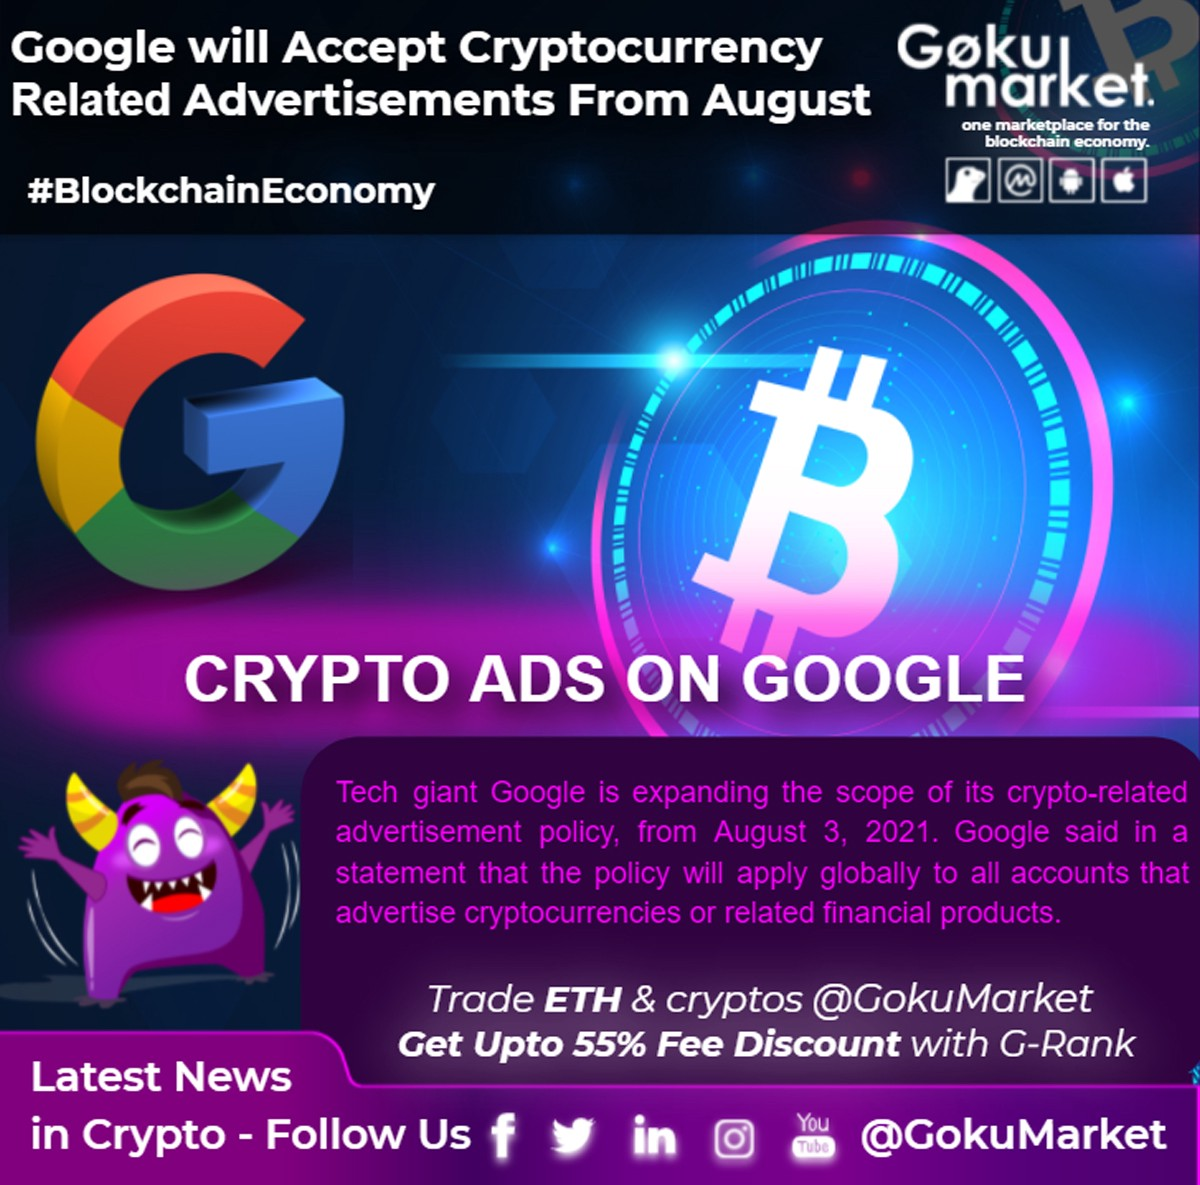 Google will accept cryptocurrency #exchanges & wallets targeting advertisements from August